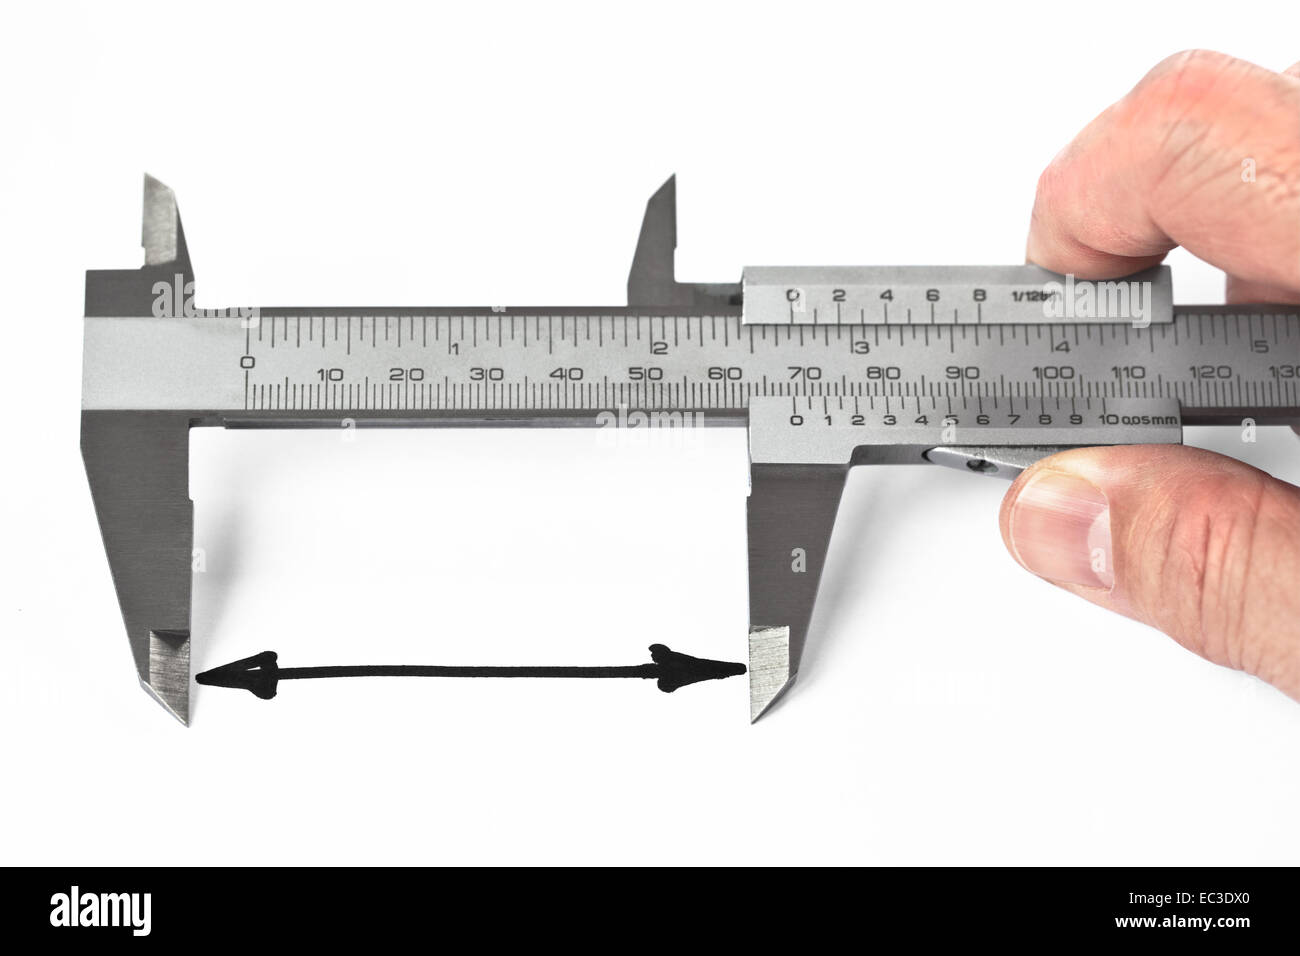 Man measuring distance with caliper - Stock Image